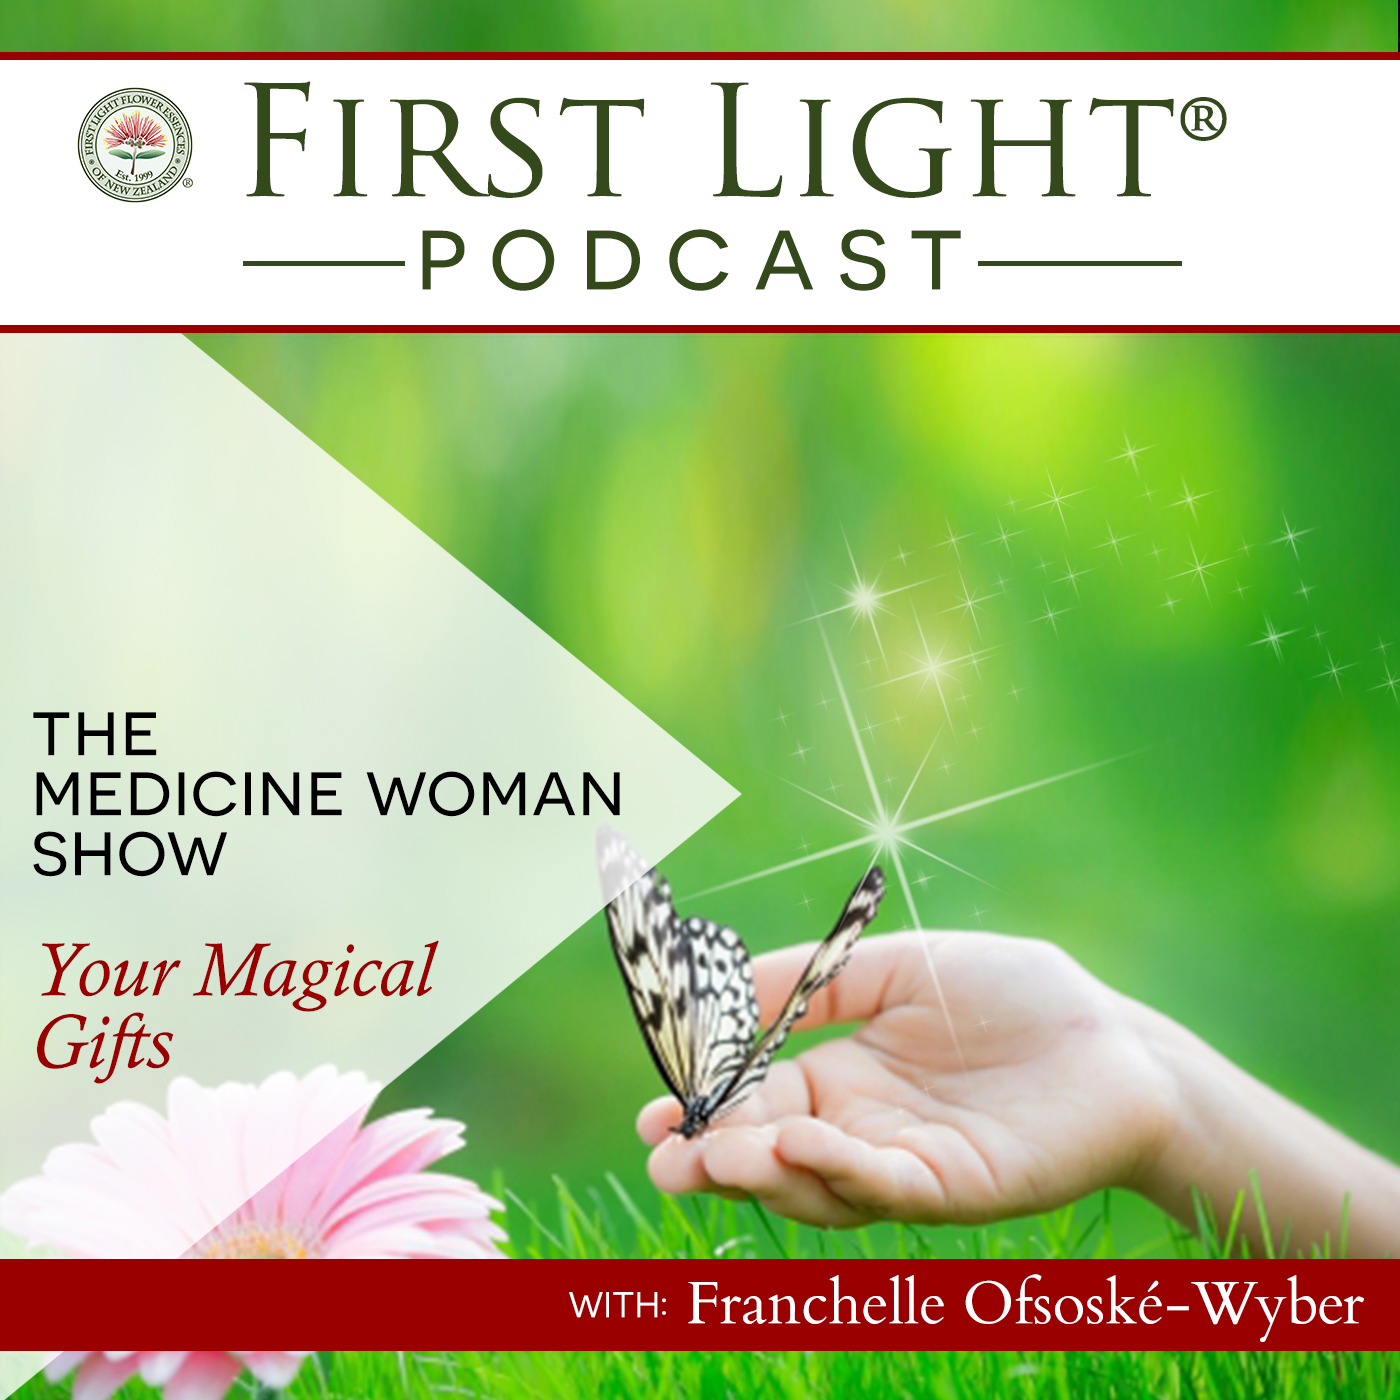 The Medicine Woman Show - Your Magical Gifts